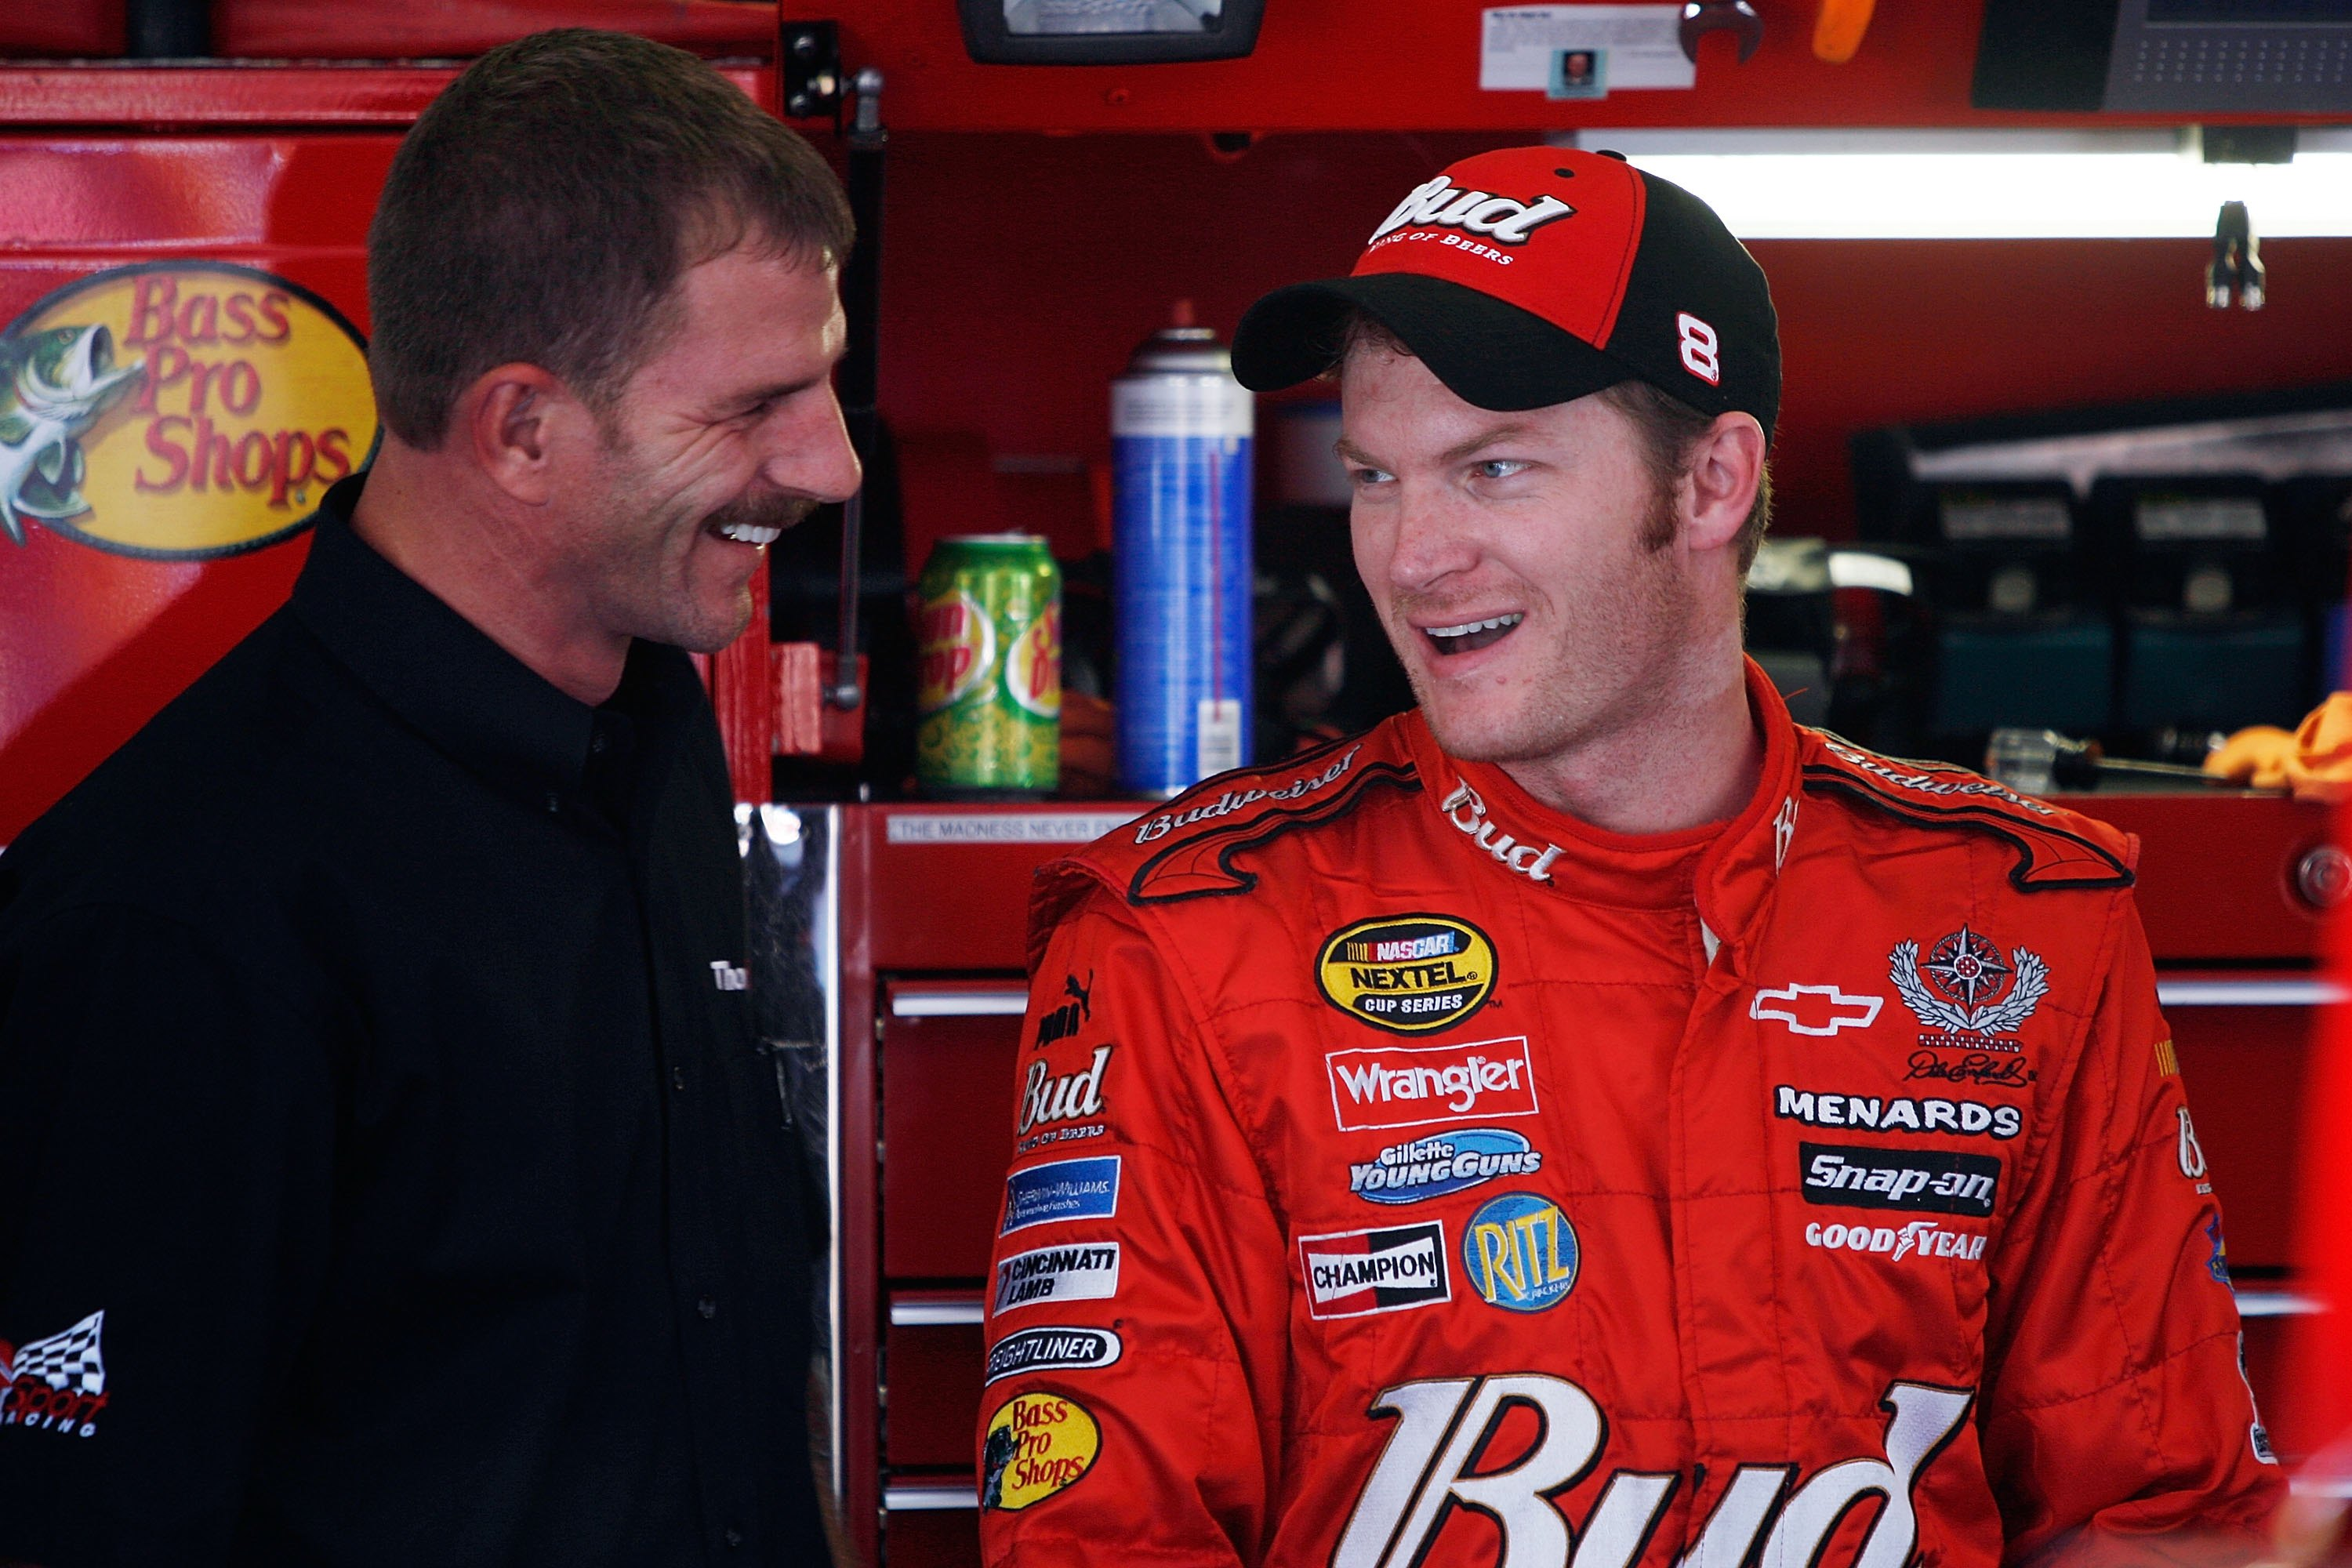 Dale Earnhardt Jr. Was Eager to Meet His Brother Kerry to Help Change the Vibe in the House